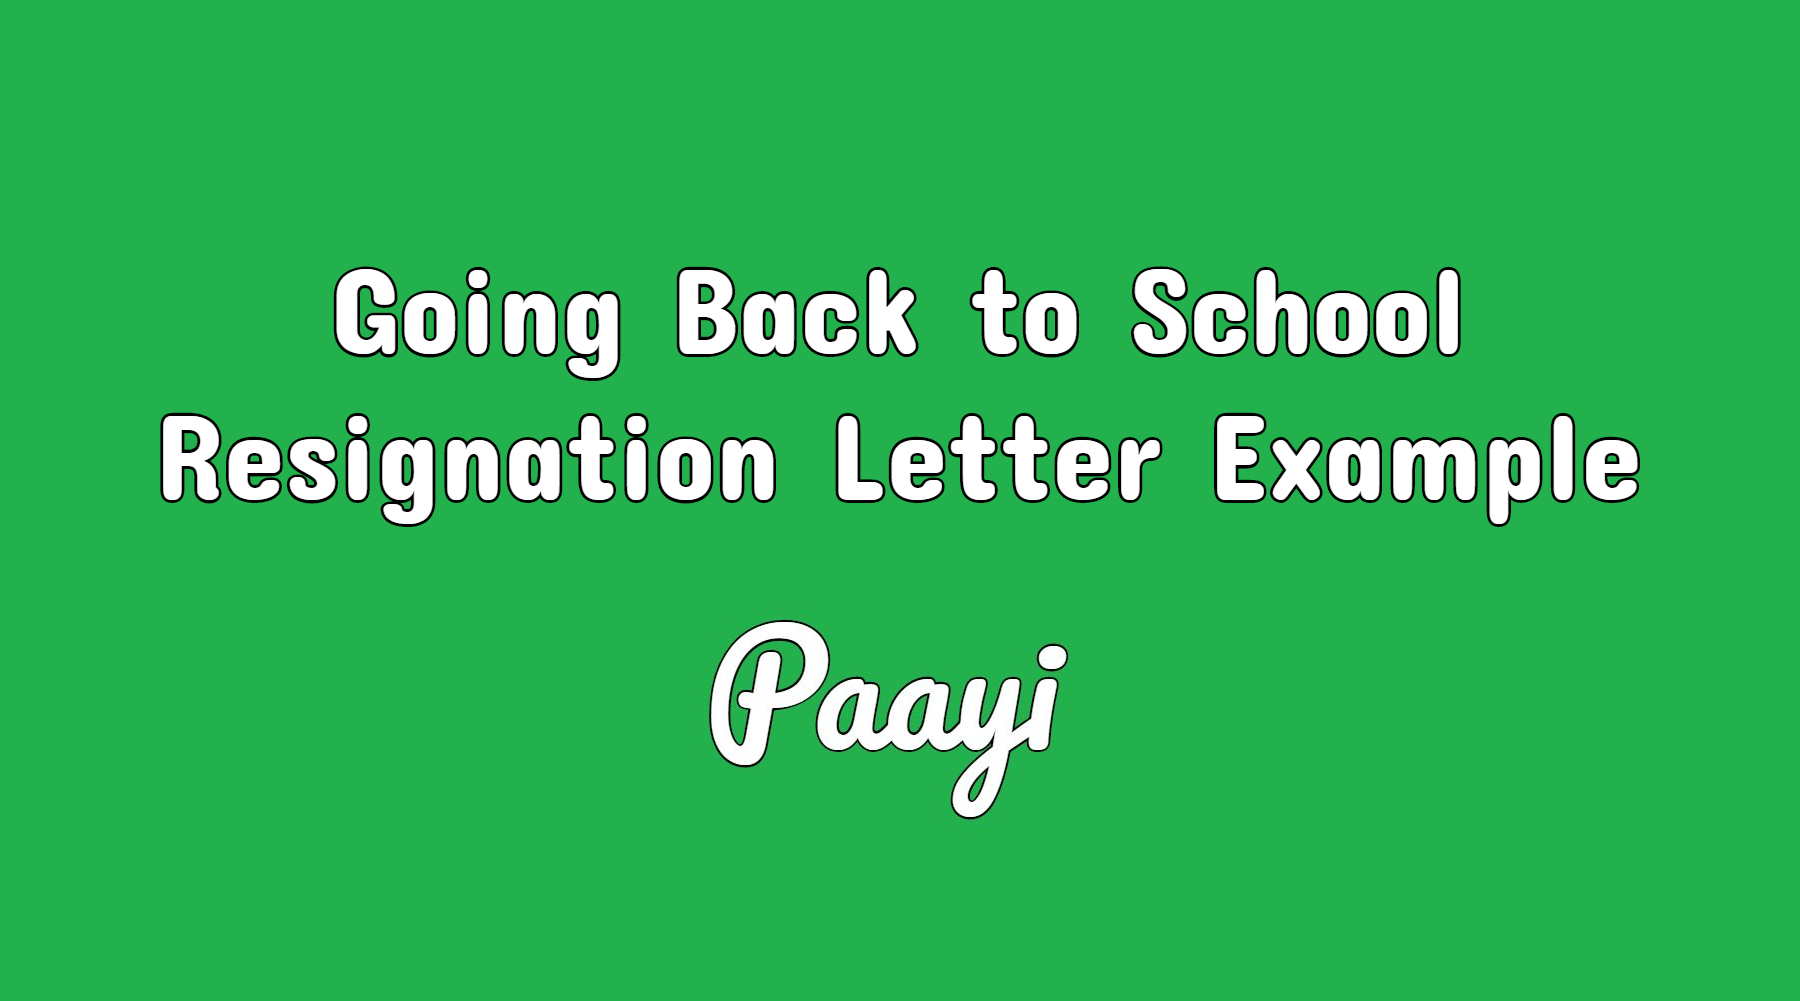 going back to school resignation letter example paayi